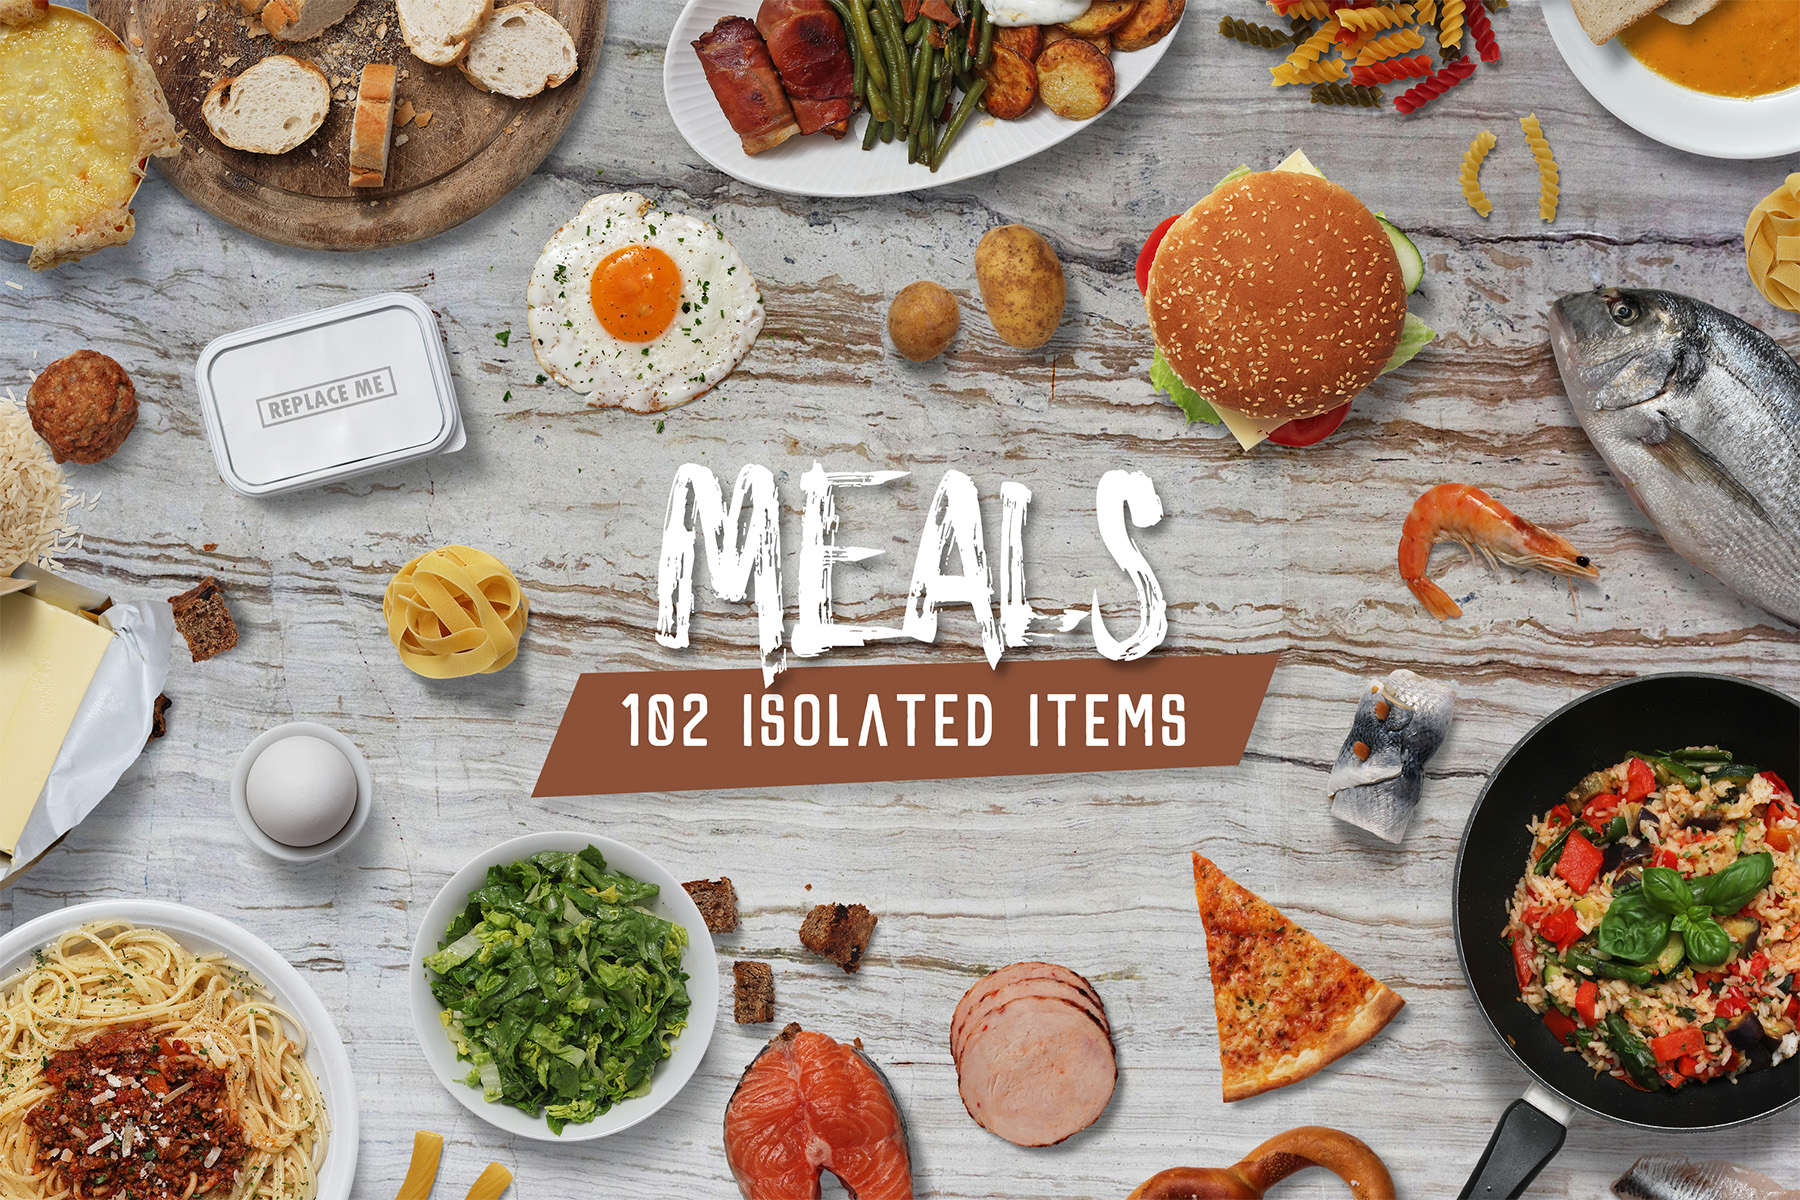 Meals - Isolated Food Items example image 1